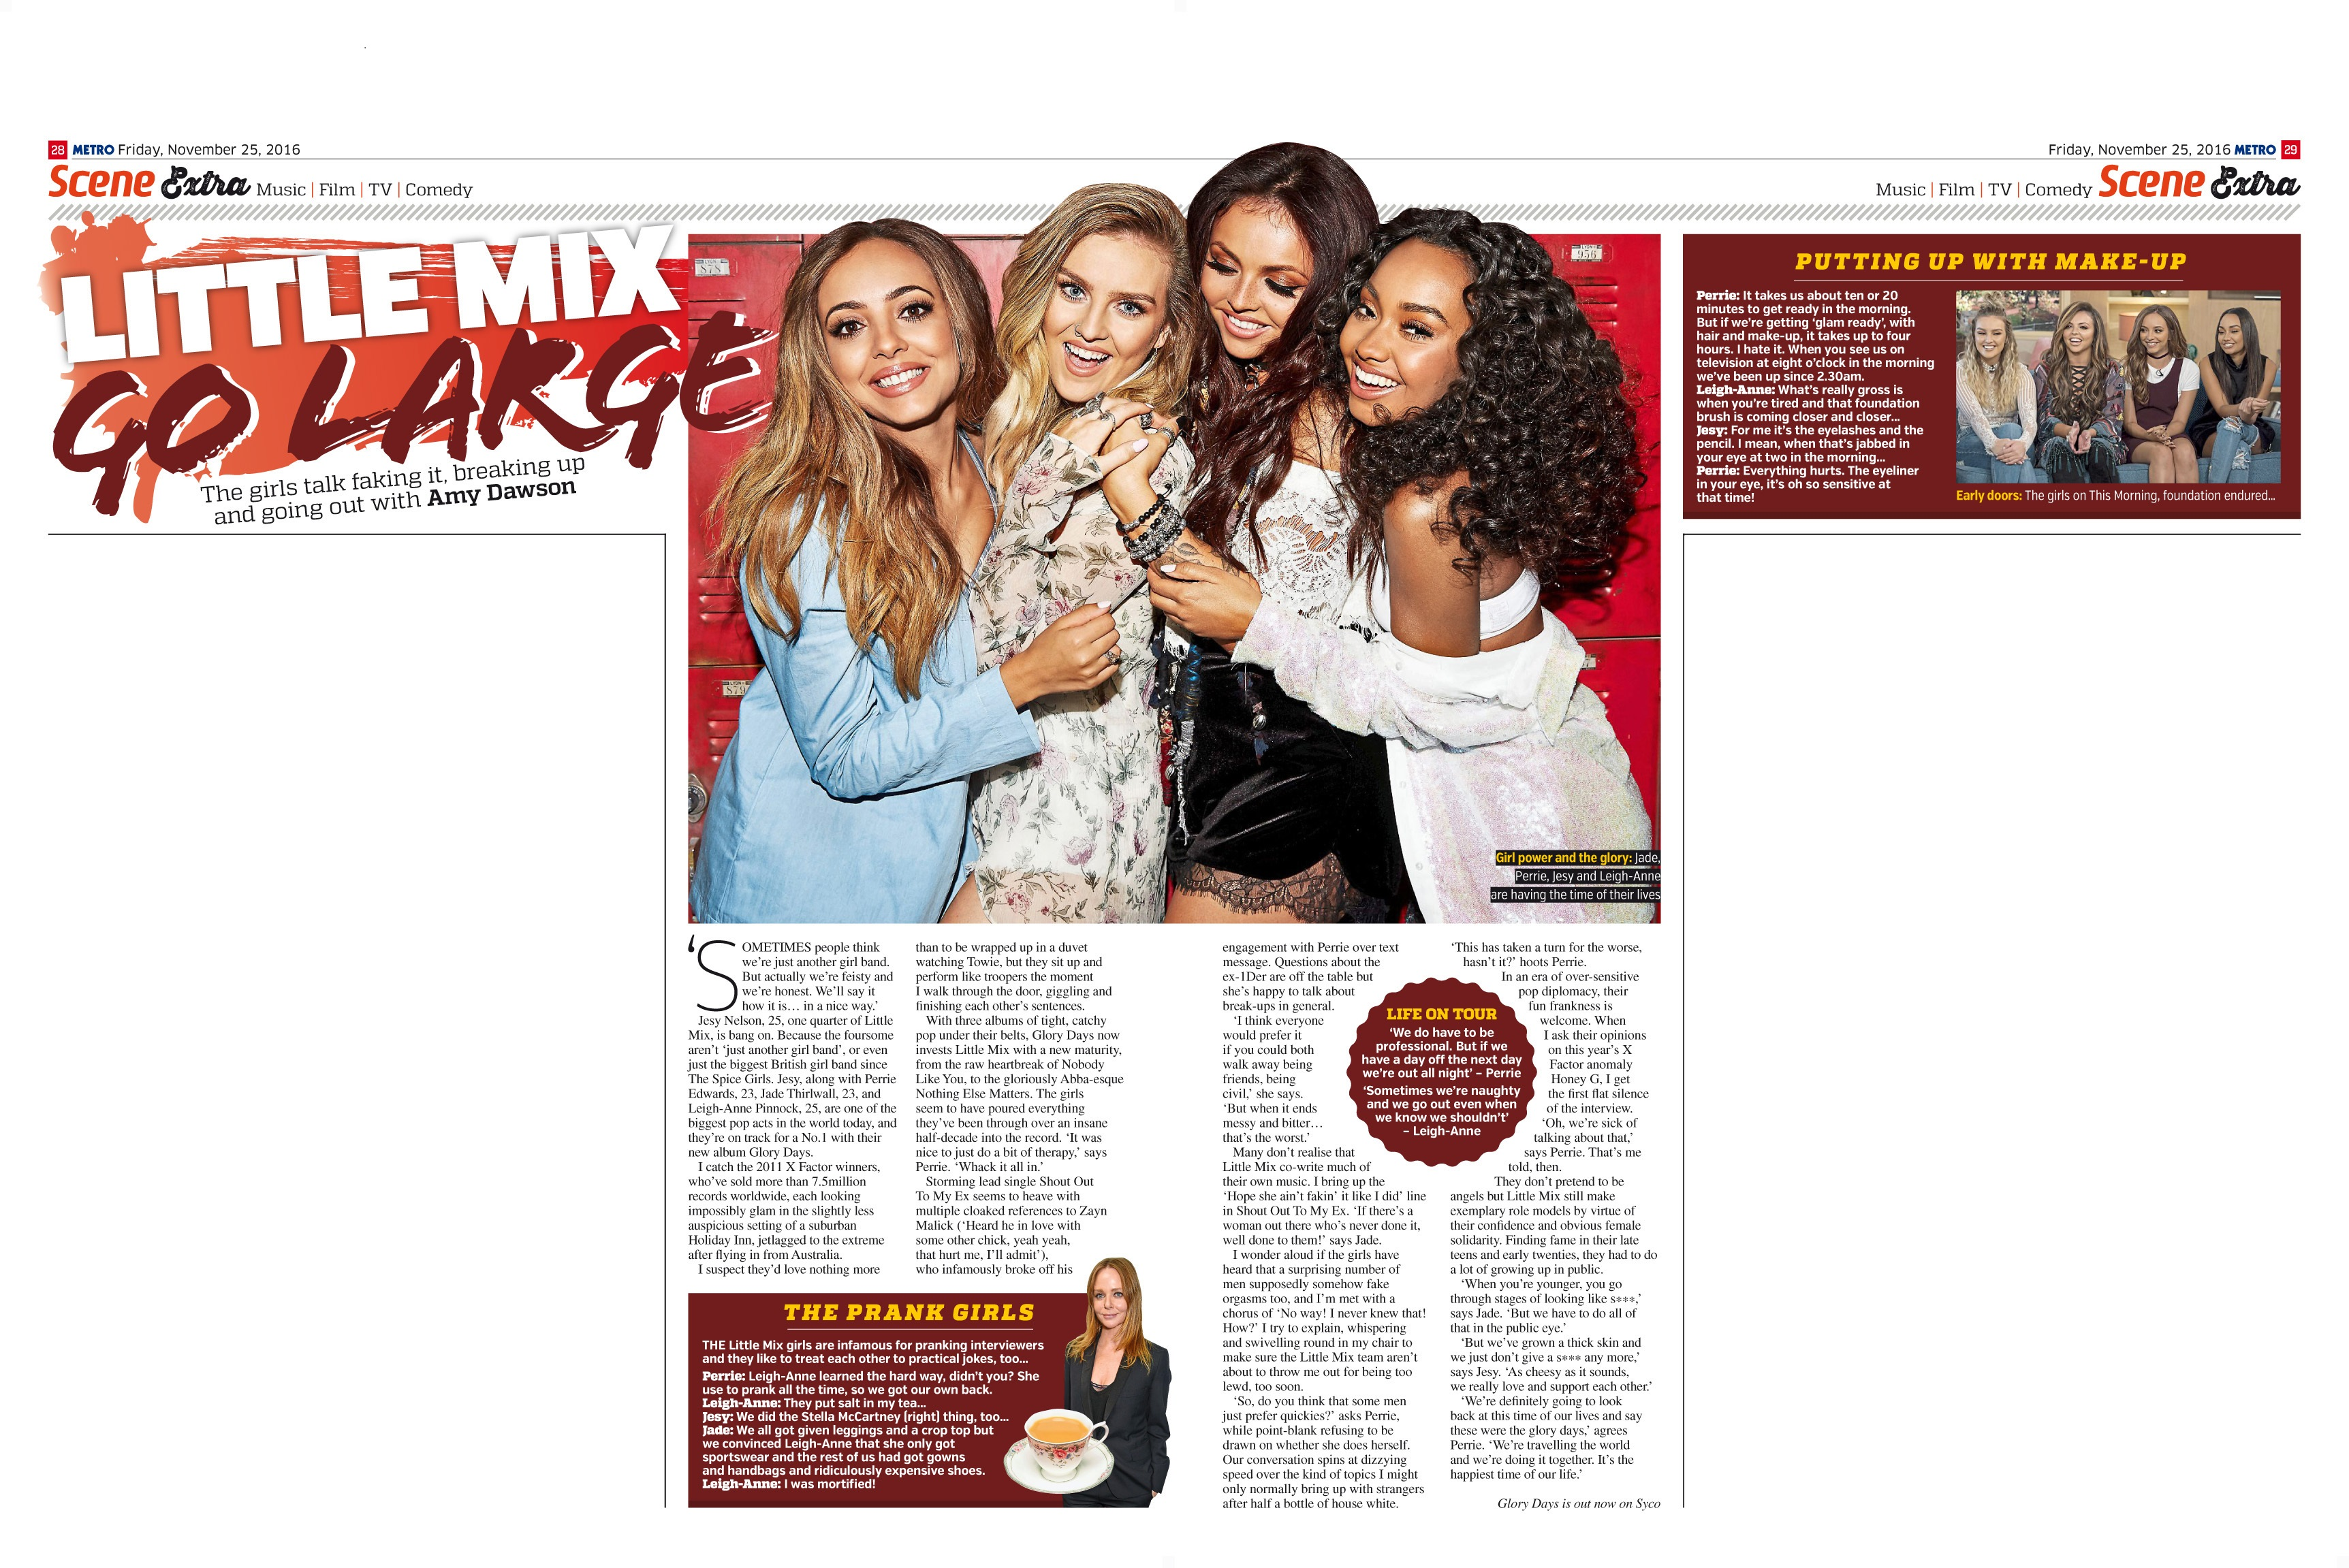 Little Mix Go Large (Metro, 26th Nov 2016)